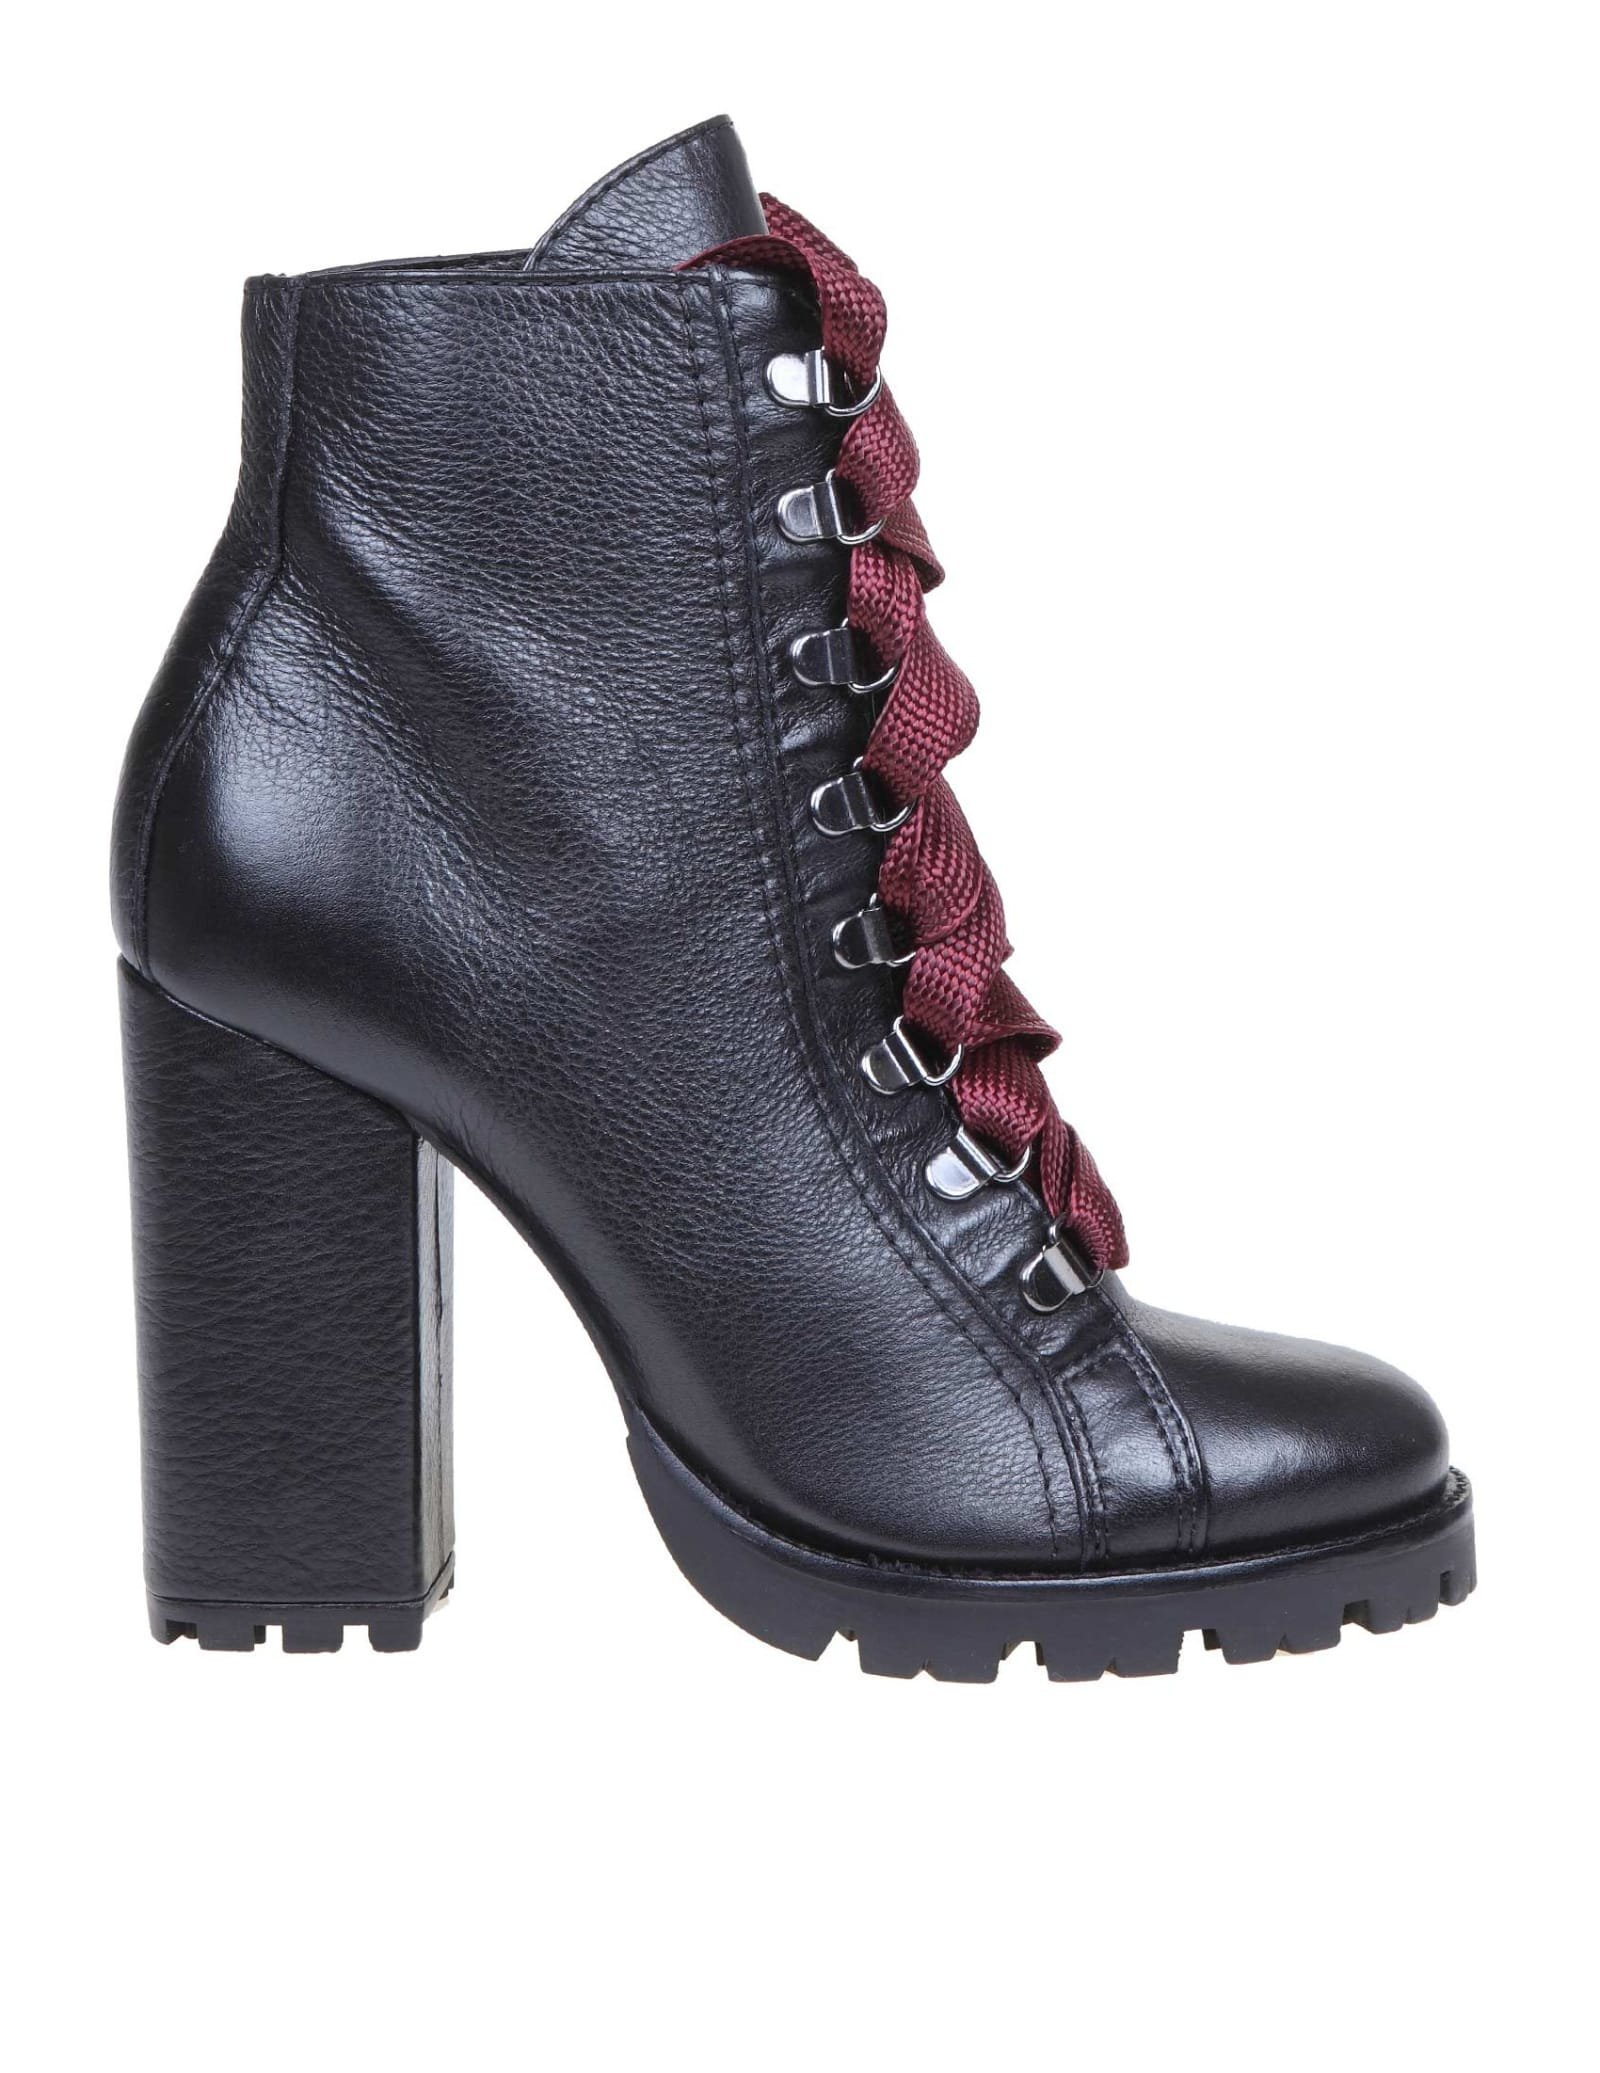 Schutz Black Leather Ankle Boot